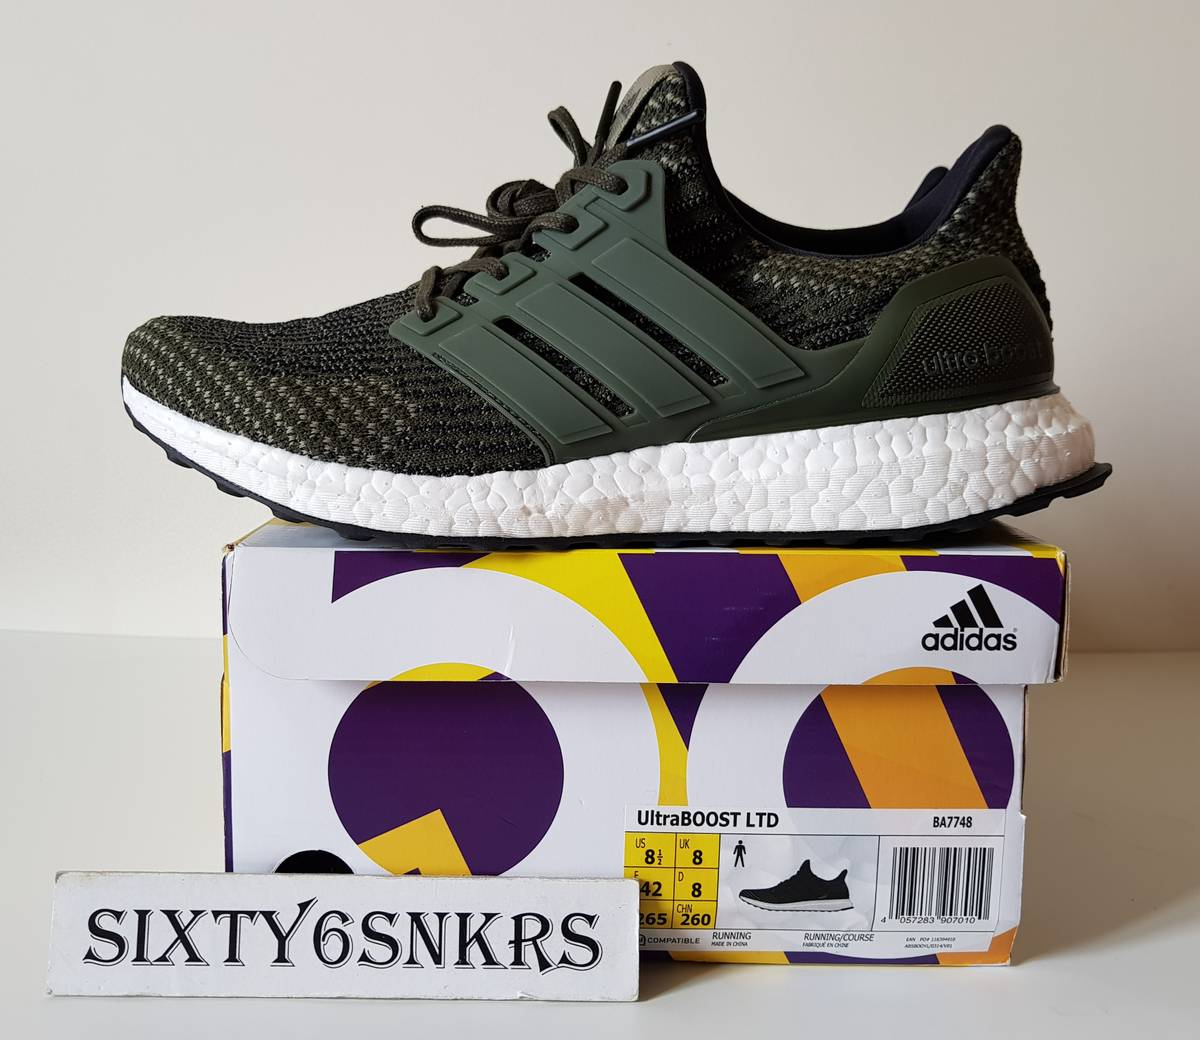 ADIDAS ULTRA BOOST 3.0 TRACE CARGO OLIVE MILITARY PACK